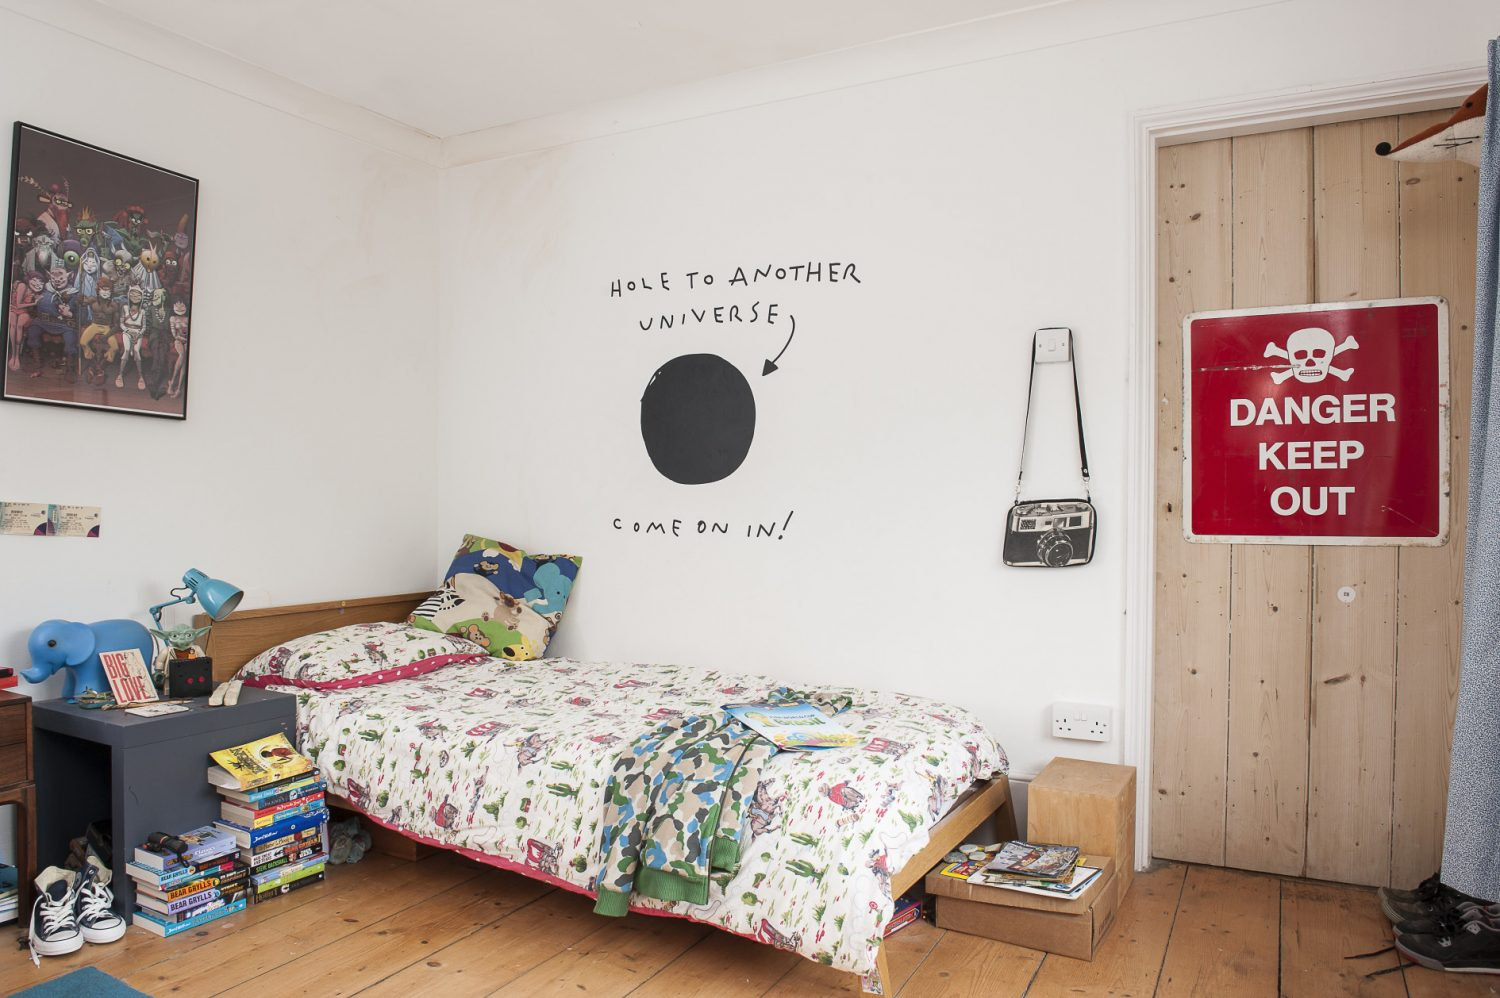 Zack and Aggy let their creativity run wild in their playfully styled bedrooms